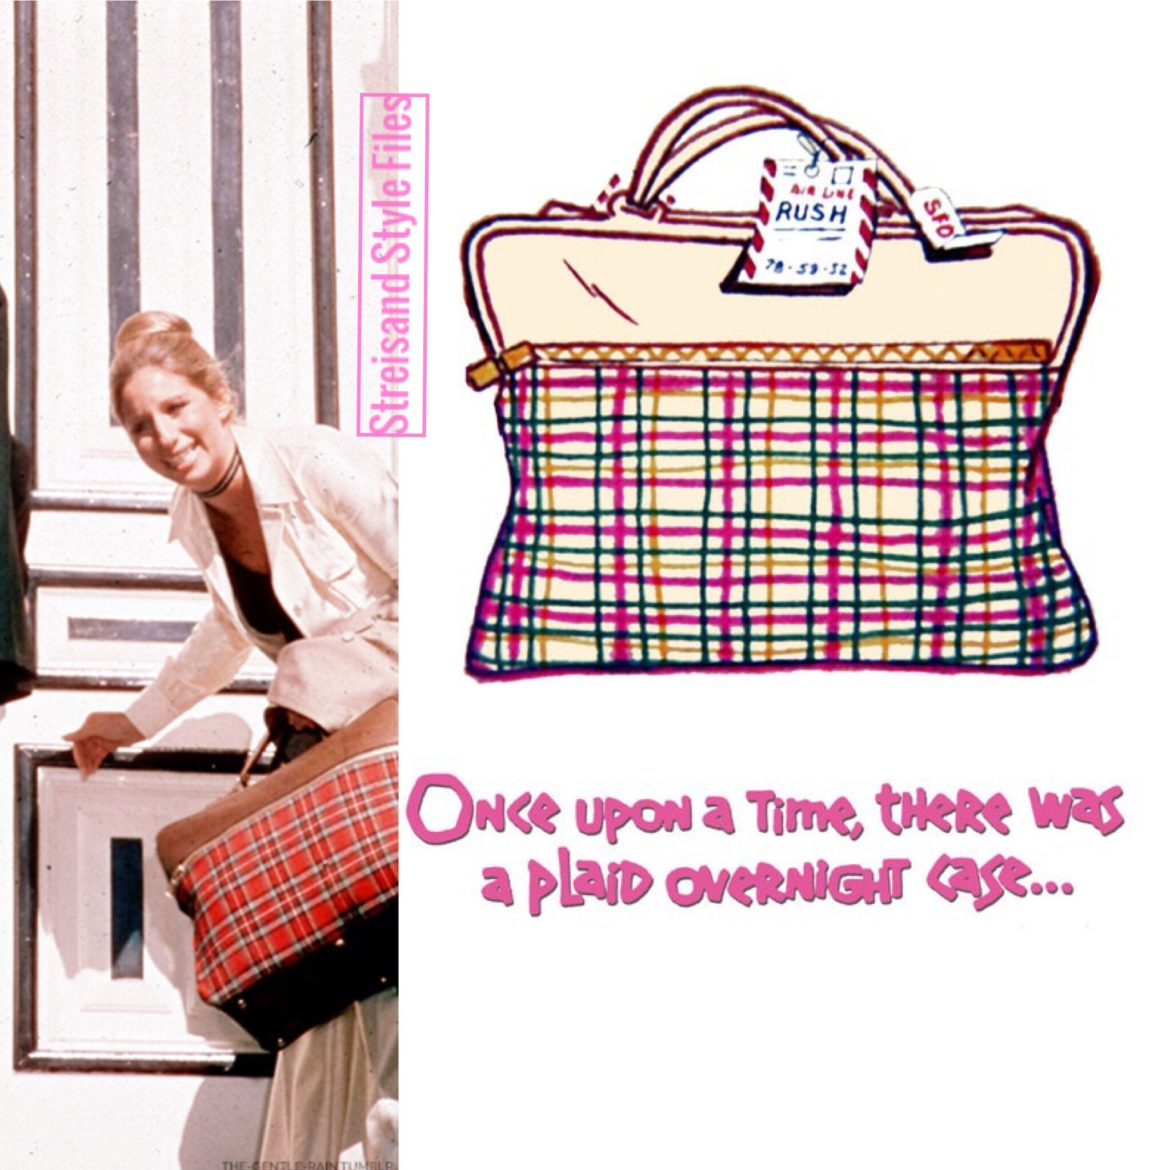 What's Up Doc plaid overnight case